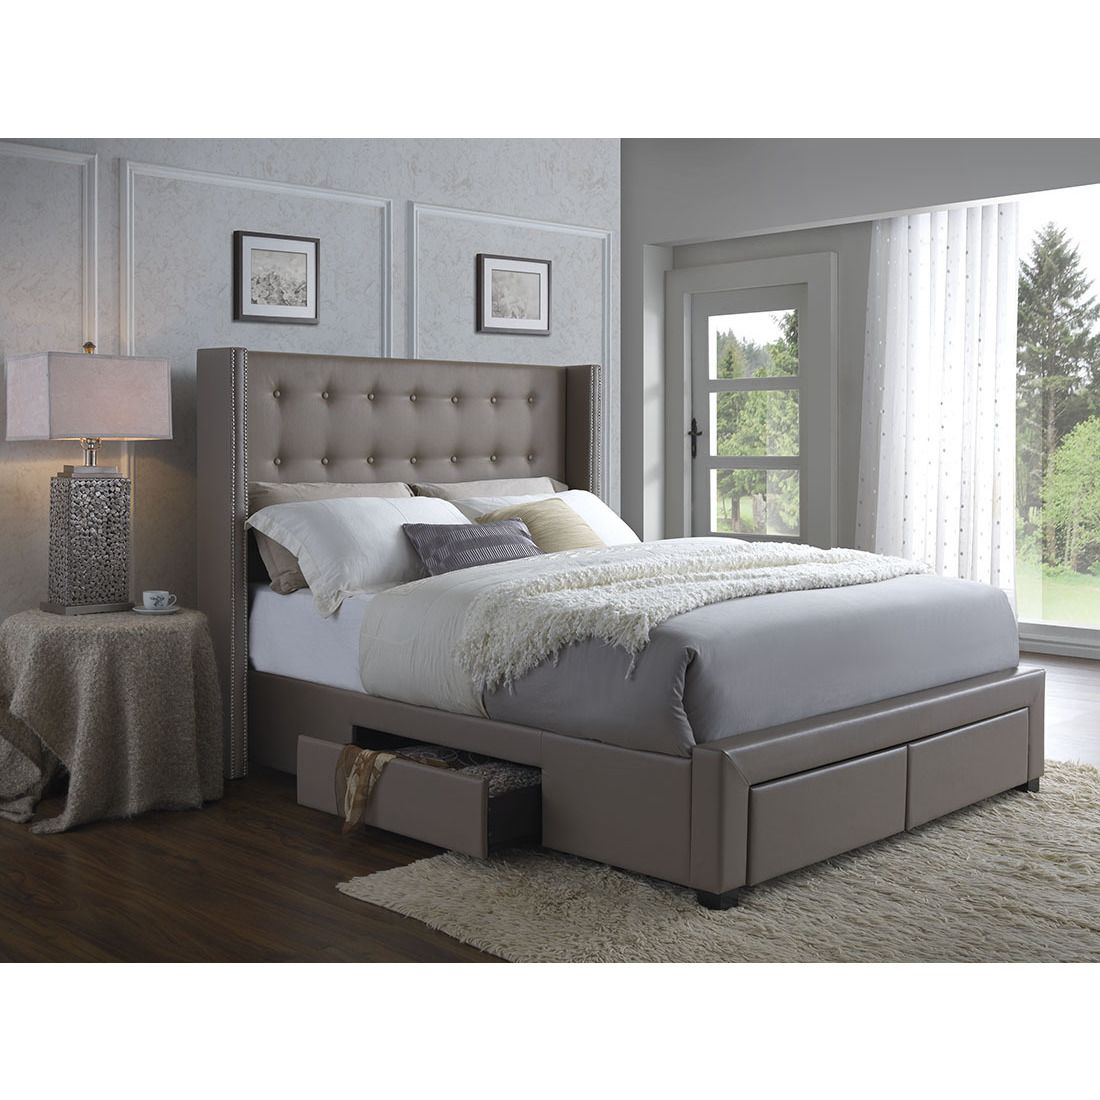 Victorian king storage beds with drawers - Dc Casa Melrose Walnut Faux Leather Wingback Storage Bed By Dg Casa